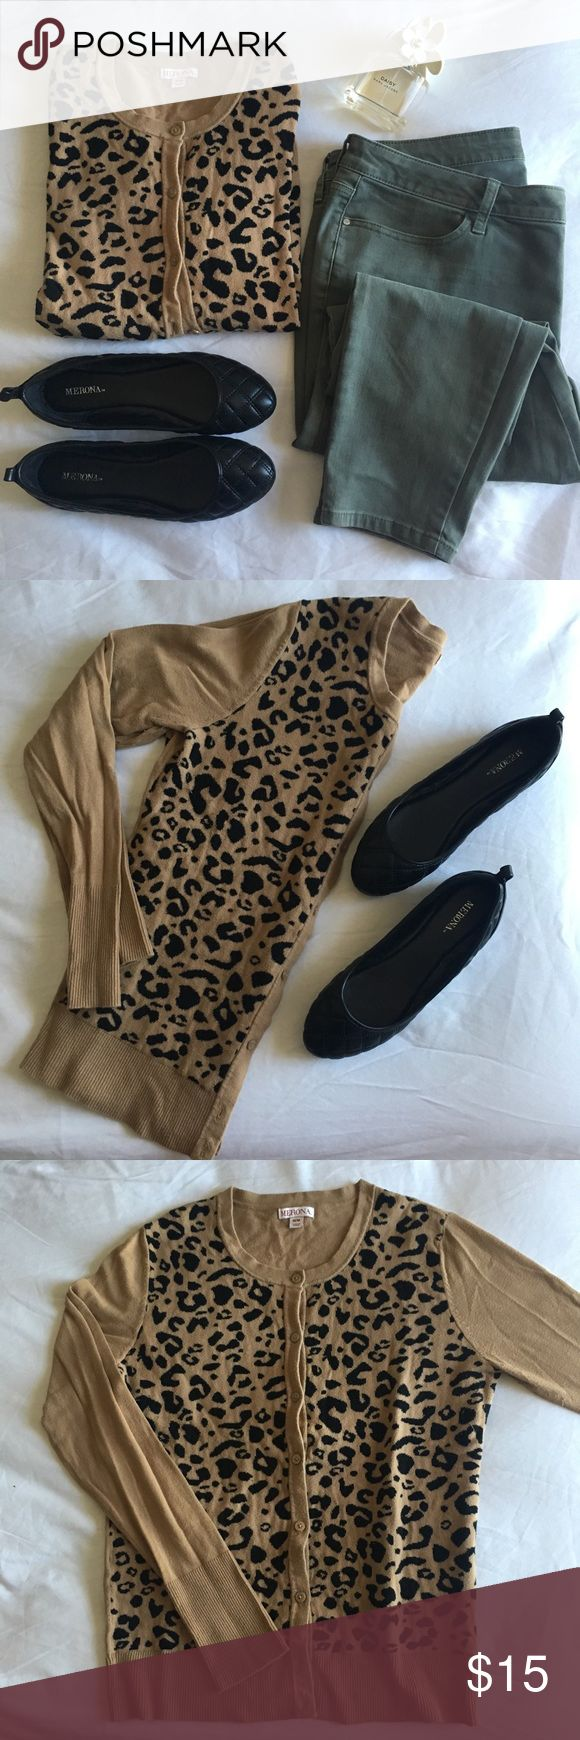 Leopard print cardigan EUC cardigan designed with a fabulous leopard print in the front. It's a great statement piece that goes great with many basics. The print is only on the front, the back as well as the sleeves are a warm camel color.   Smoke and pet free home • Make me an offer   • Flats pictured are also for sale all other items are for esthetic purposes Merona Sweaters Cardigans